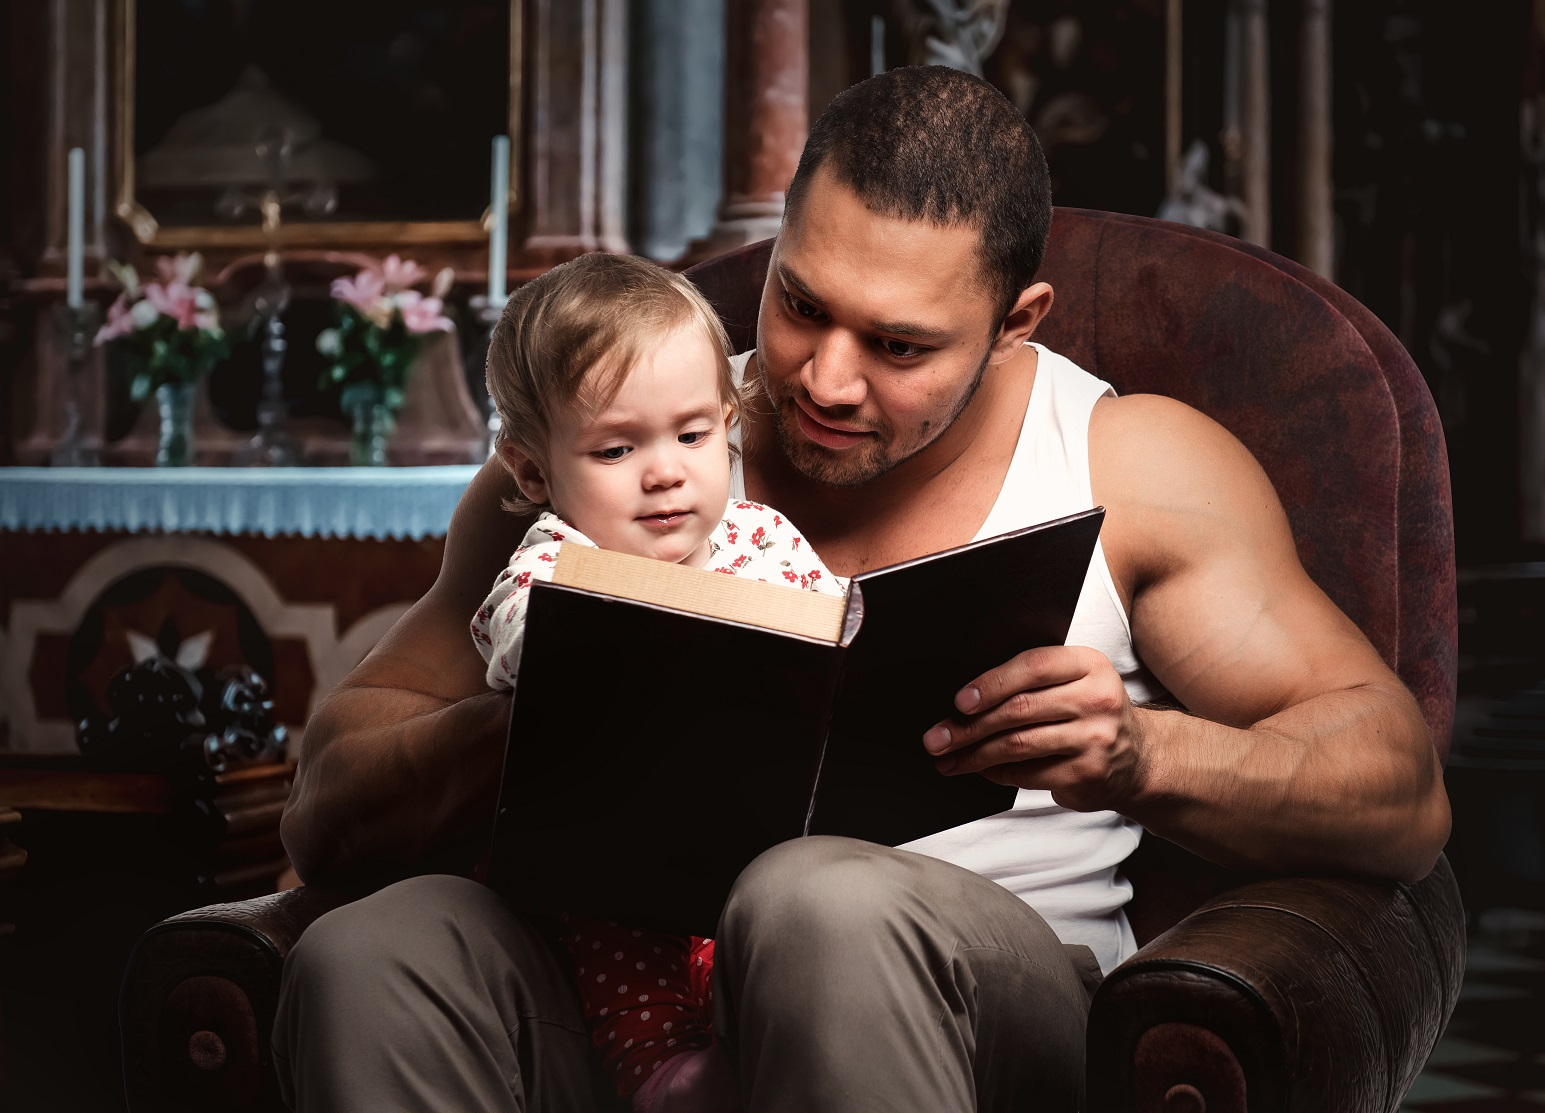 Father reading story to child